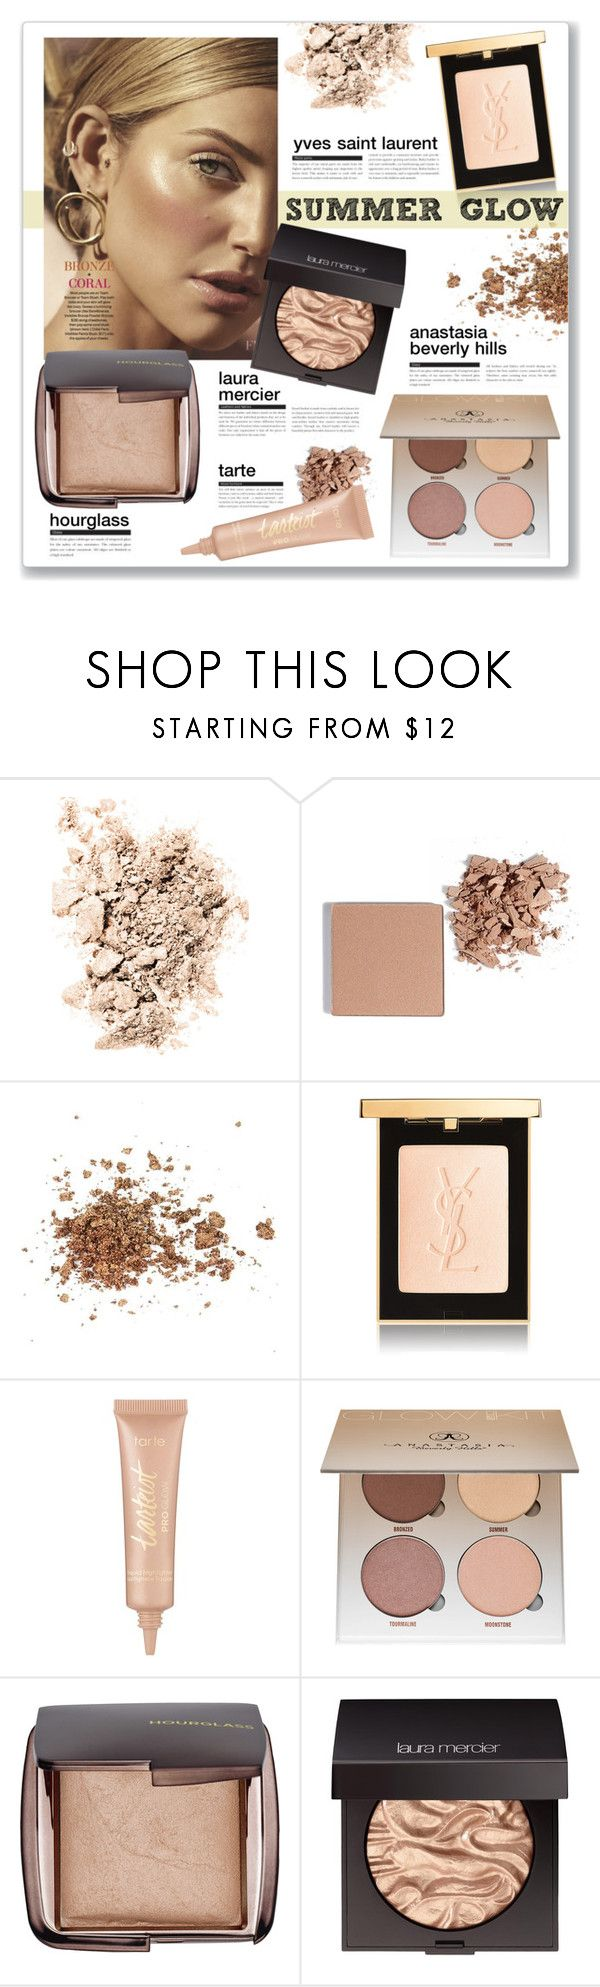 """""""Summer Glow"""" by annabmikkelsen ❤ liked on Polyvore featuring beauty, NARS Cosmetics, Trish McEvoy, Topshop, Yves Saint Laurent, BoConcept, tarte, Anastasia Beverly Hills, Hourglass Cosmetics and Laura Mercier"""